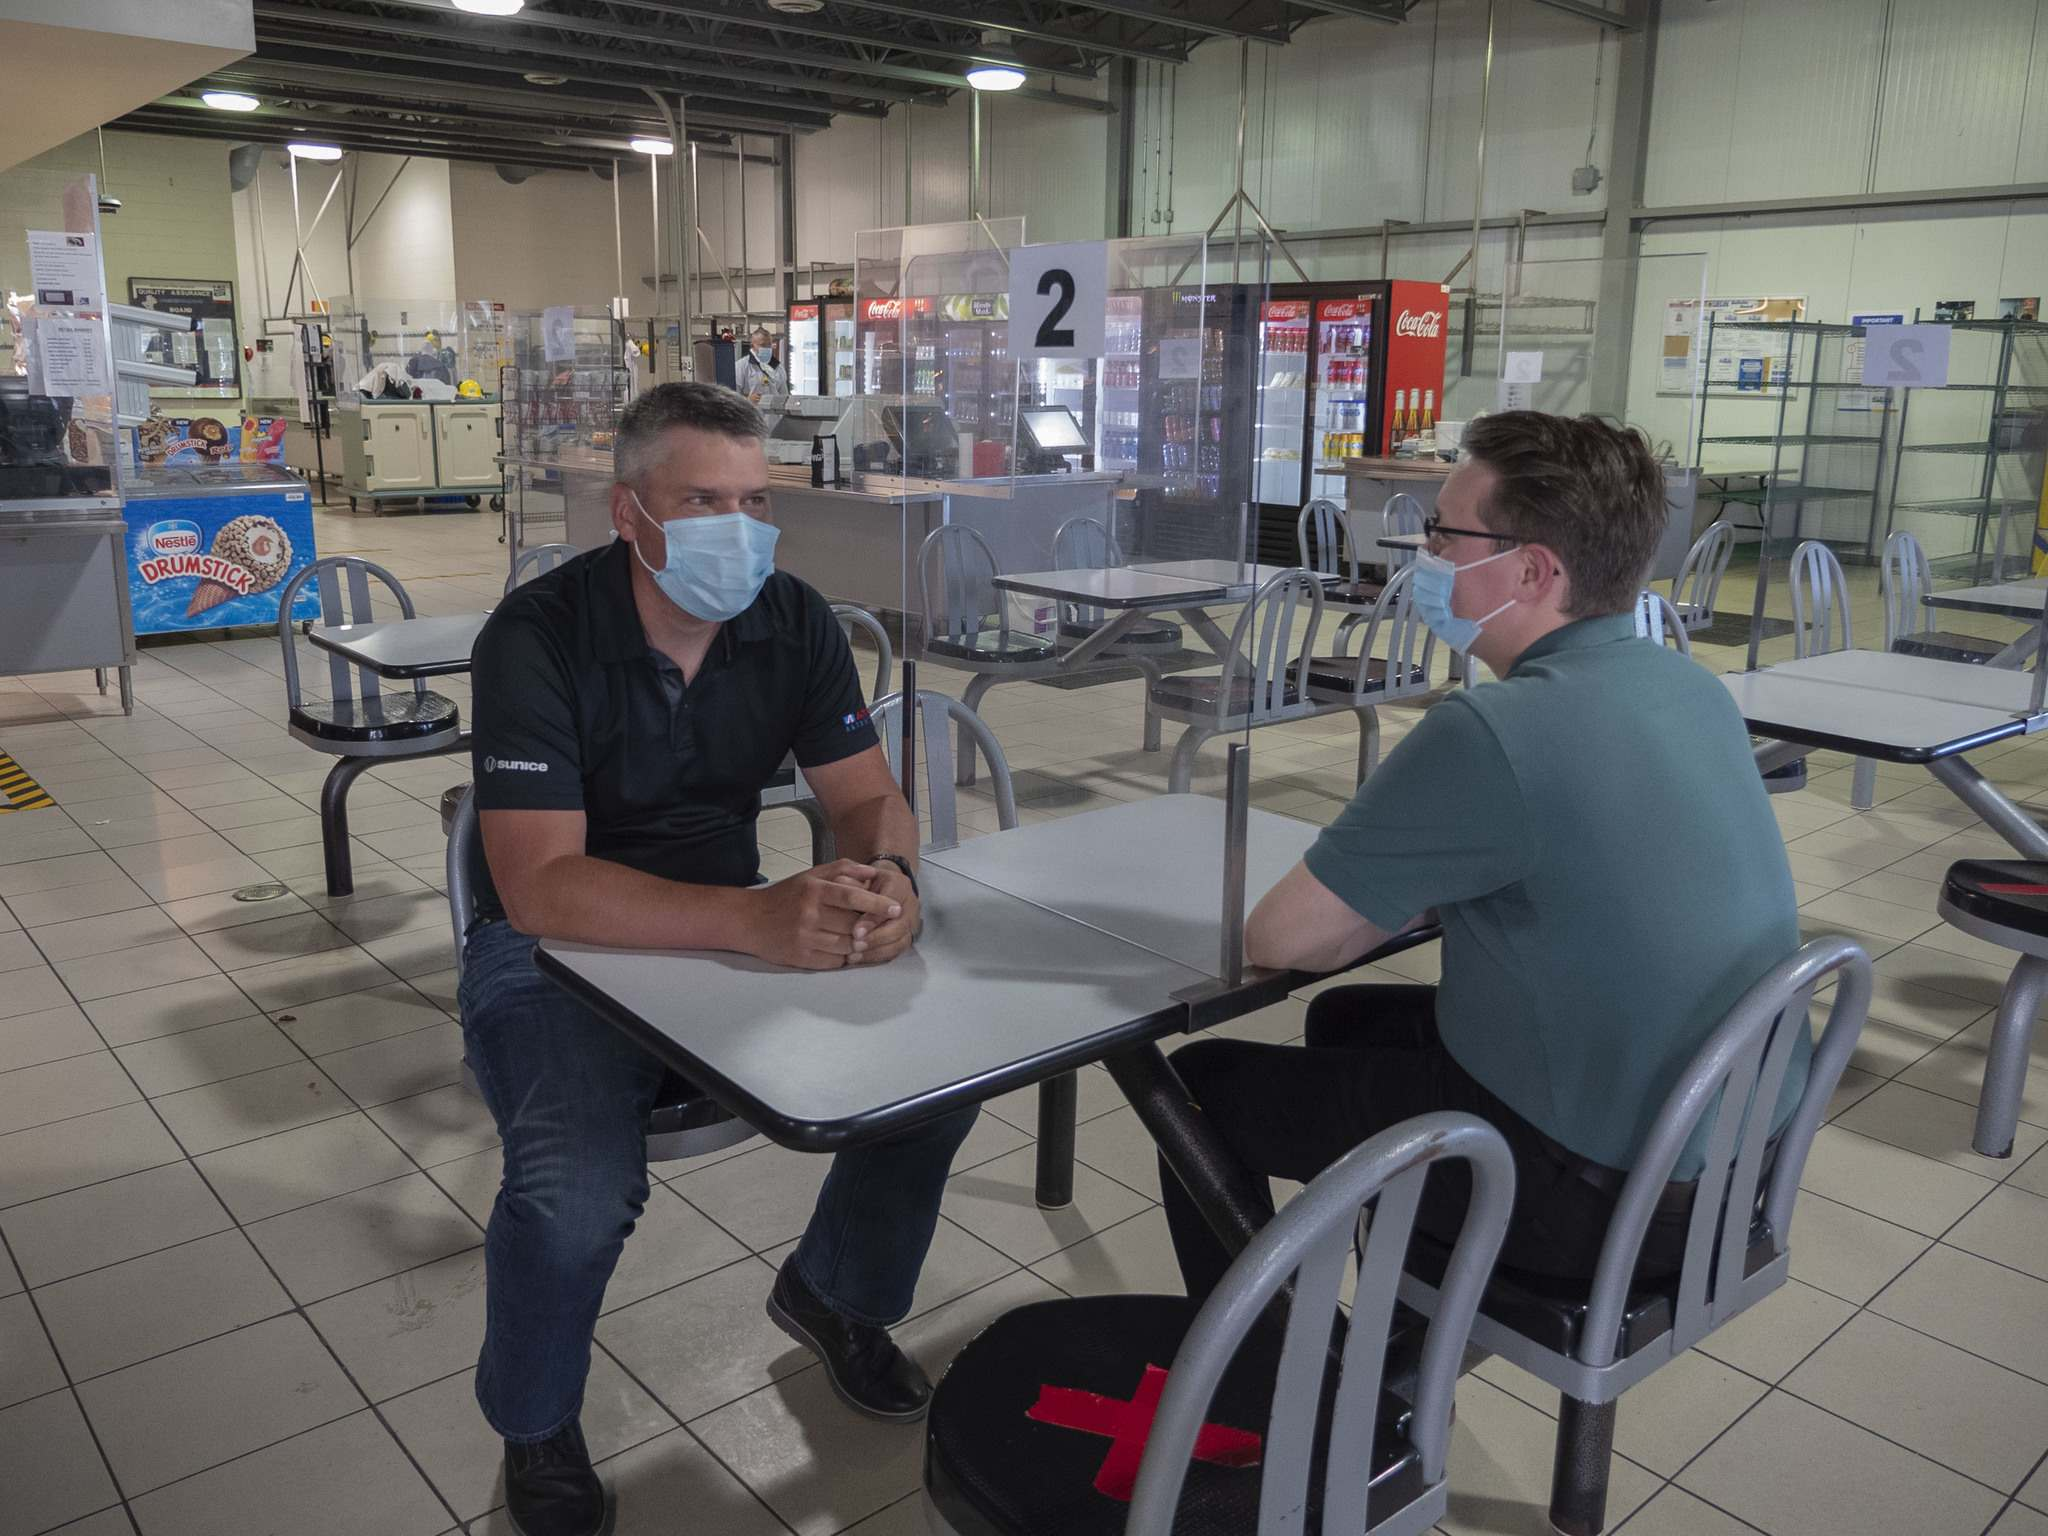 Plexiglas installed at the tables in the cafeteria at Maple Leaf Foods in Brandon, one of several steps it says it has taken to prevent spread of the coronavirus.